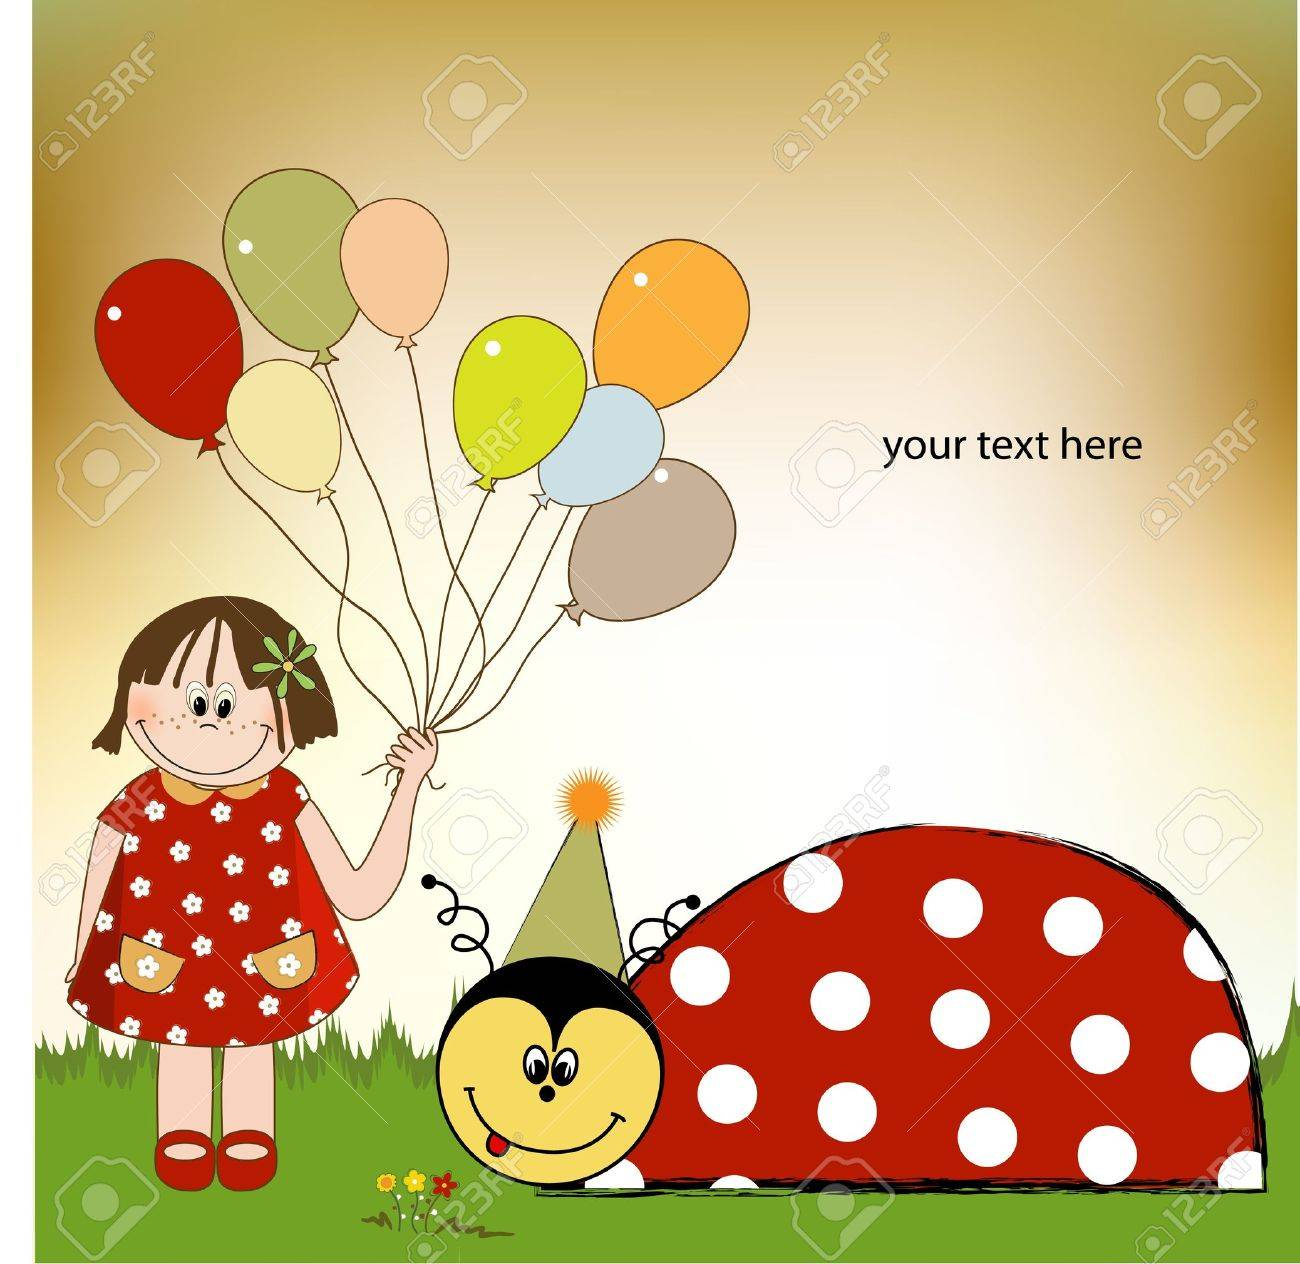 Happy Birthday Card With Ladybug Royalty Free Cliparts Vectors – Ladybug Birthday Cards